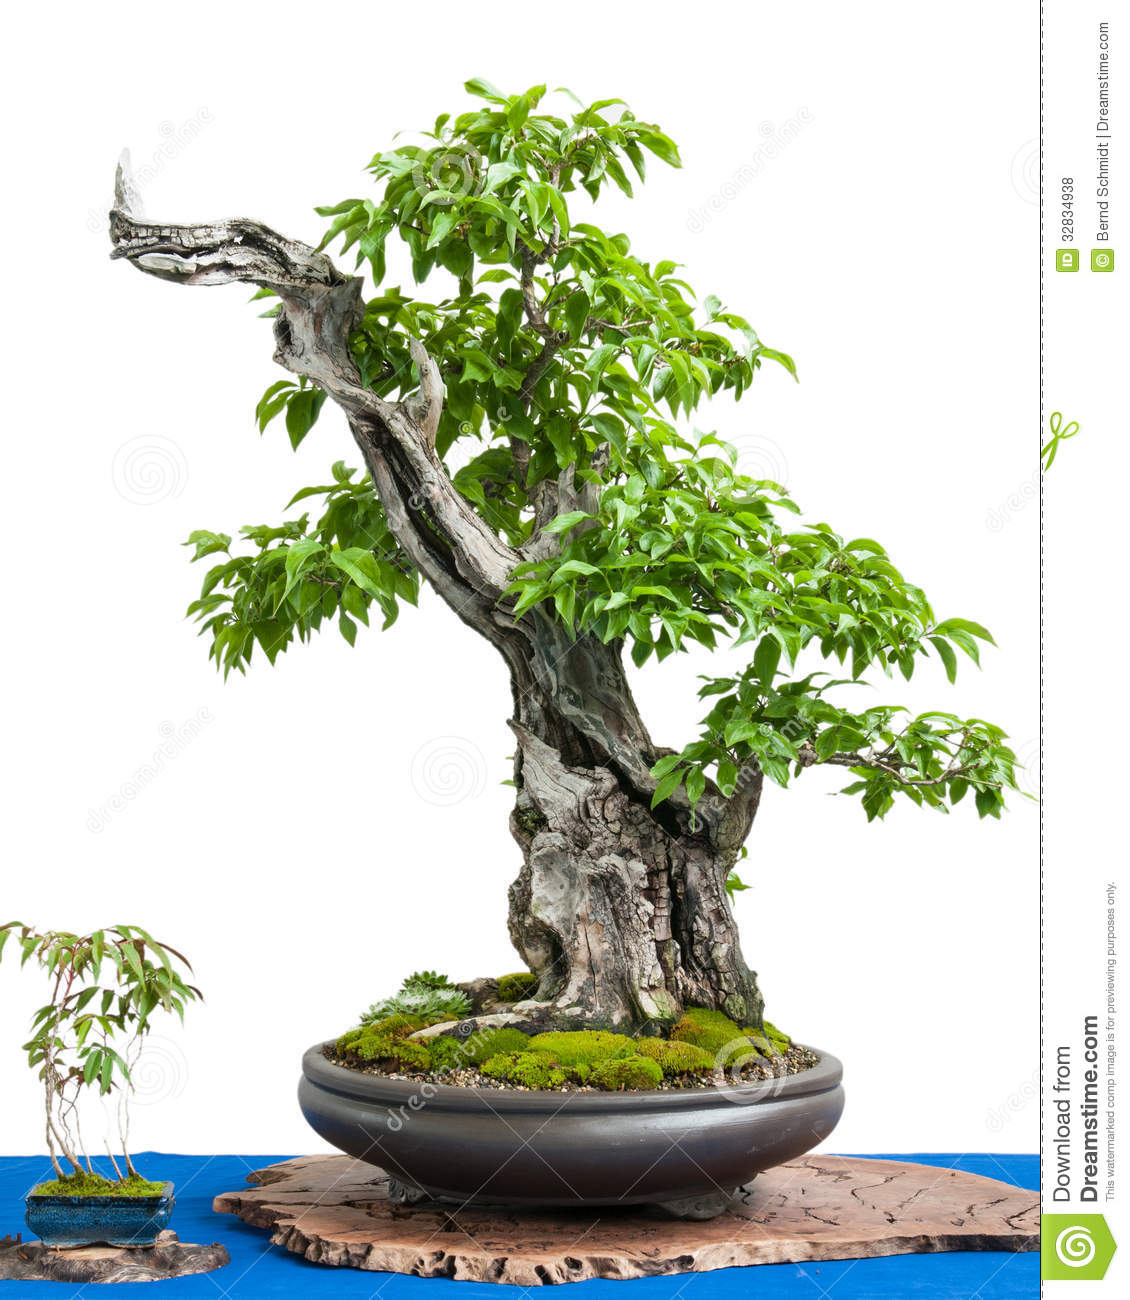 Bonsai Tree Art Interior Design Ideas Gallery